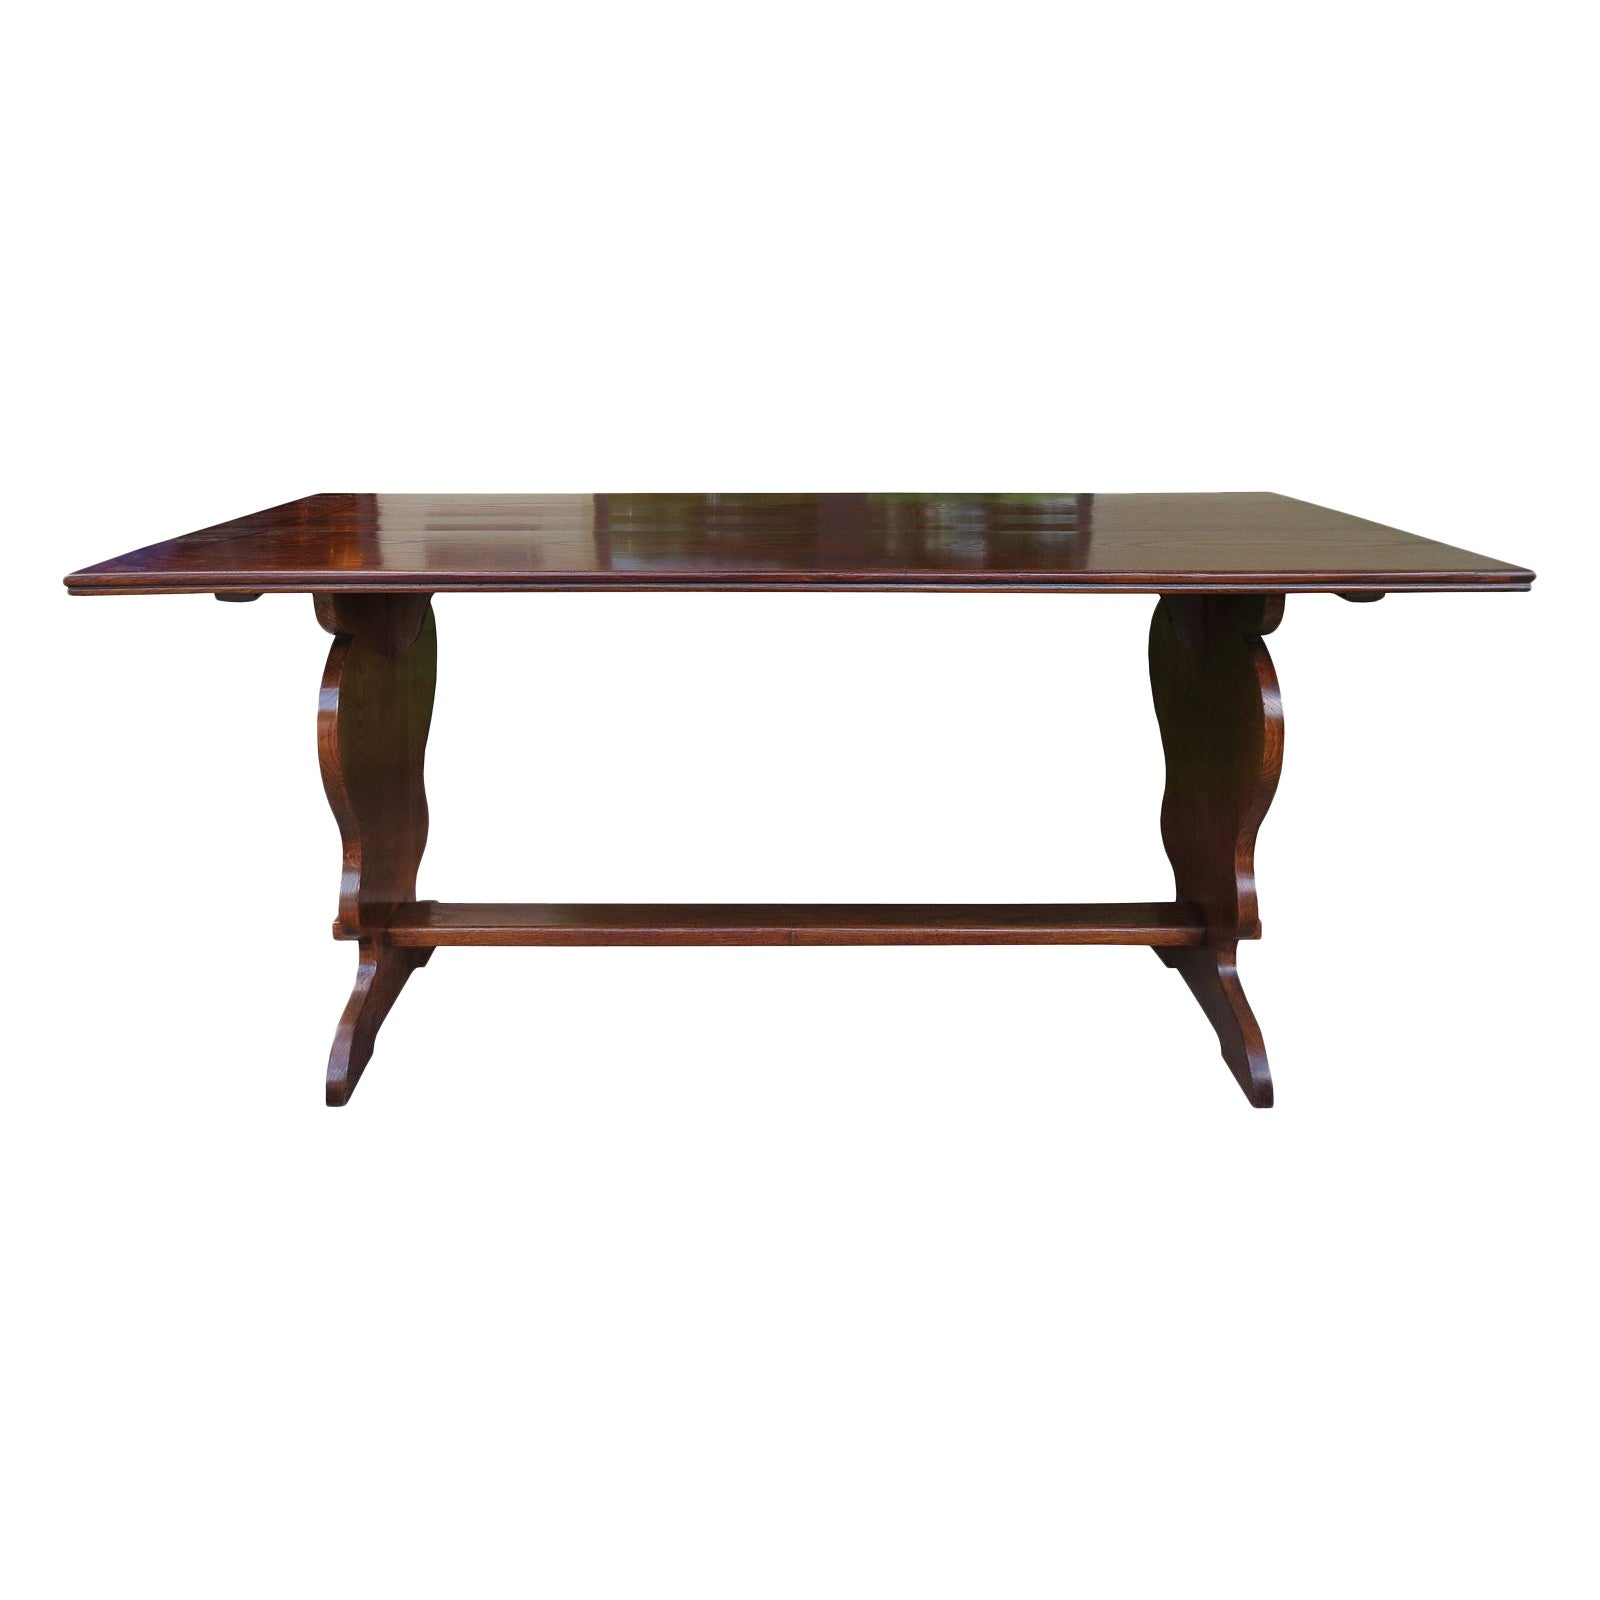 19th to Turn of the 20th Century Oak Trestle Table